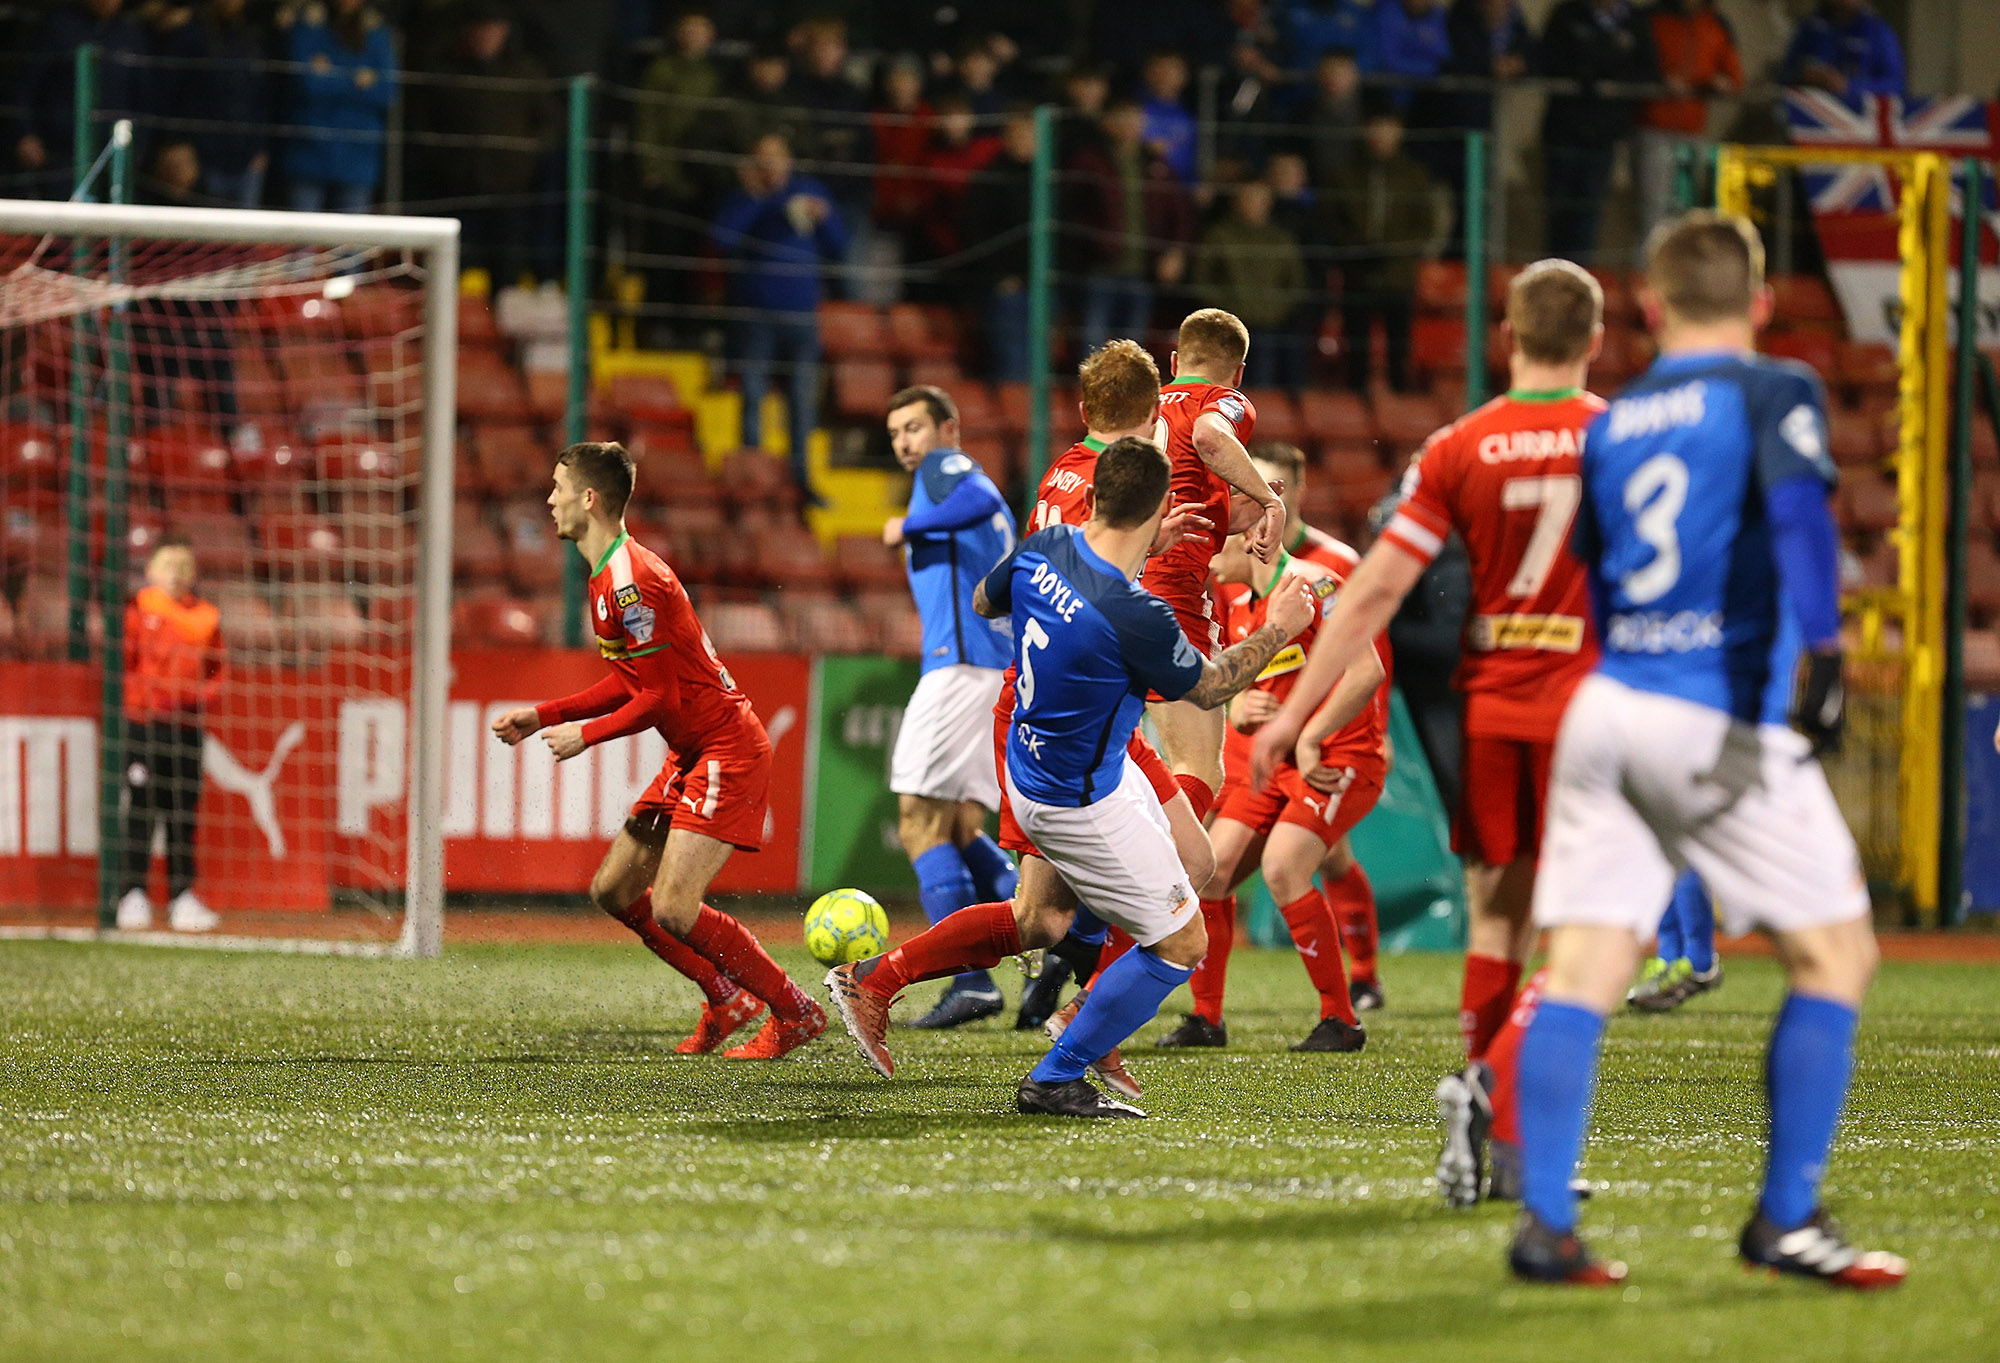 FT: Cliftonville 1-1 Glenavon